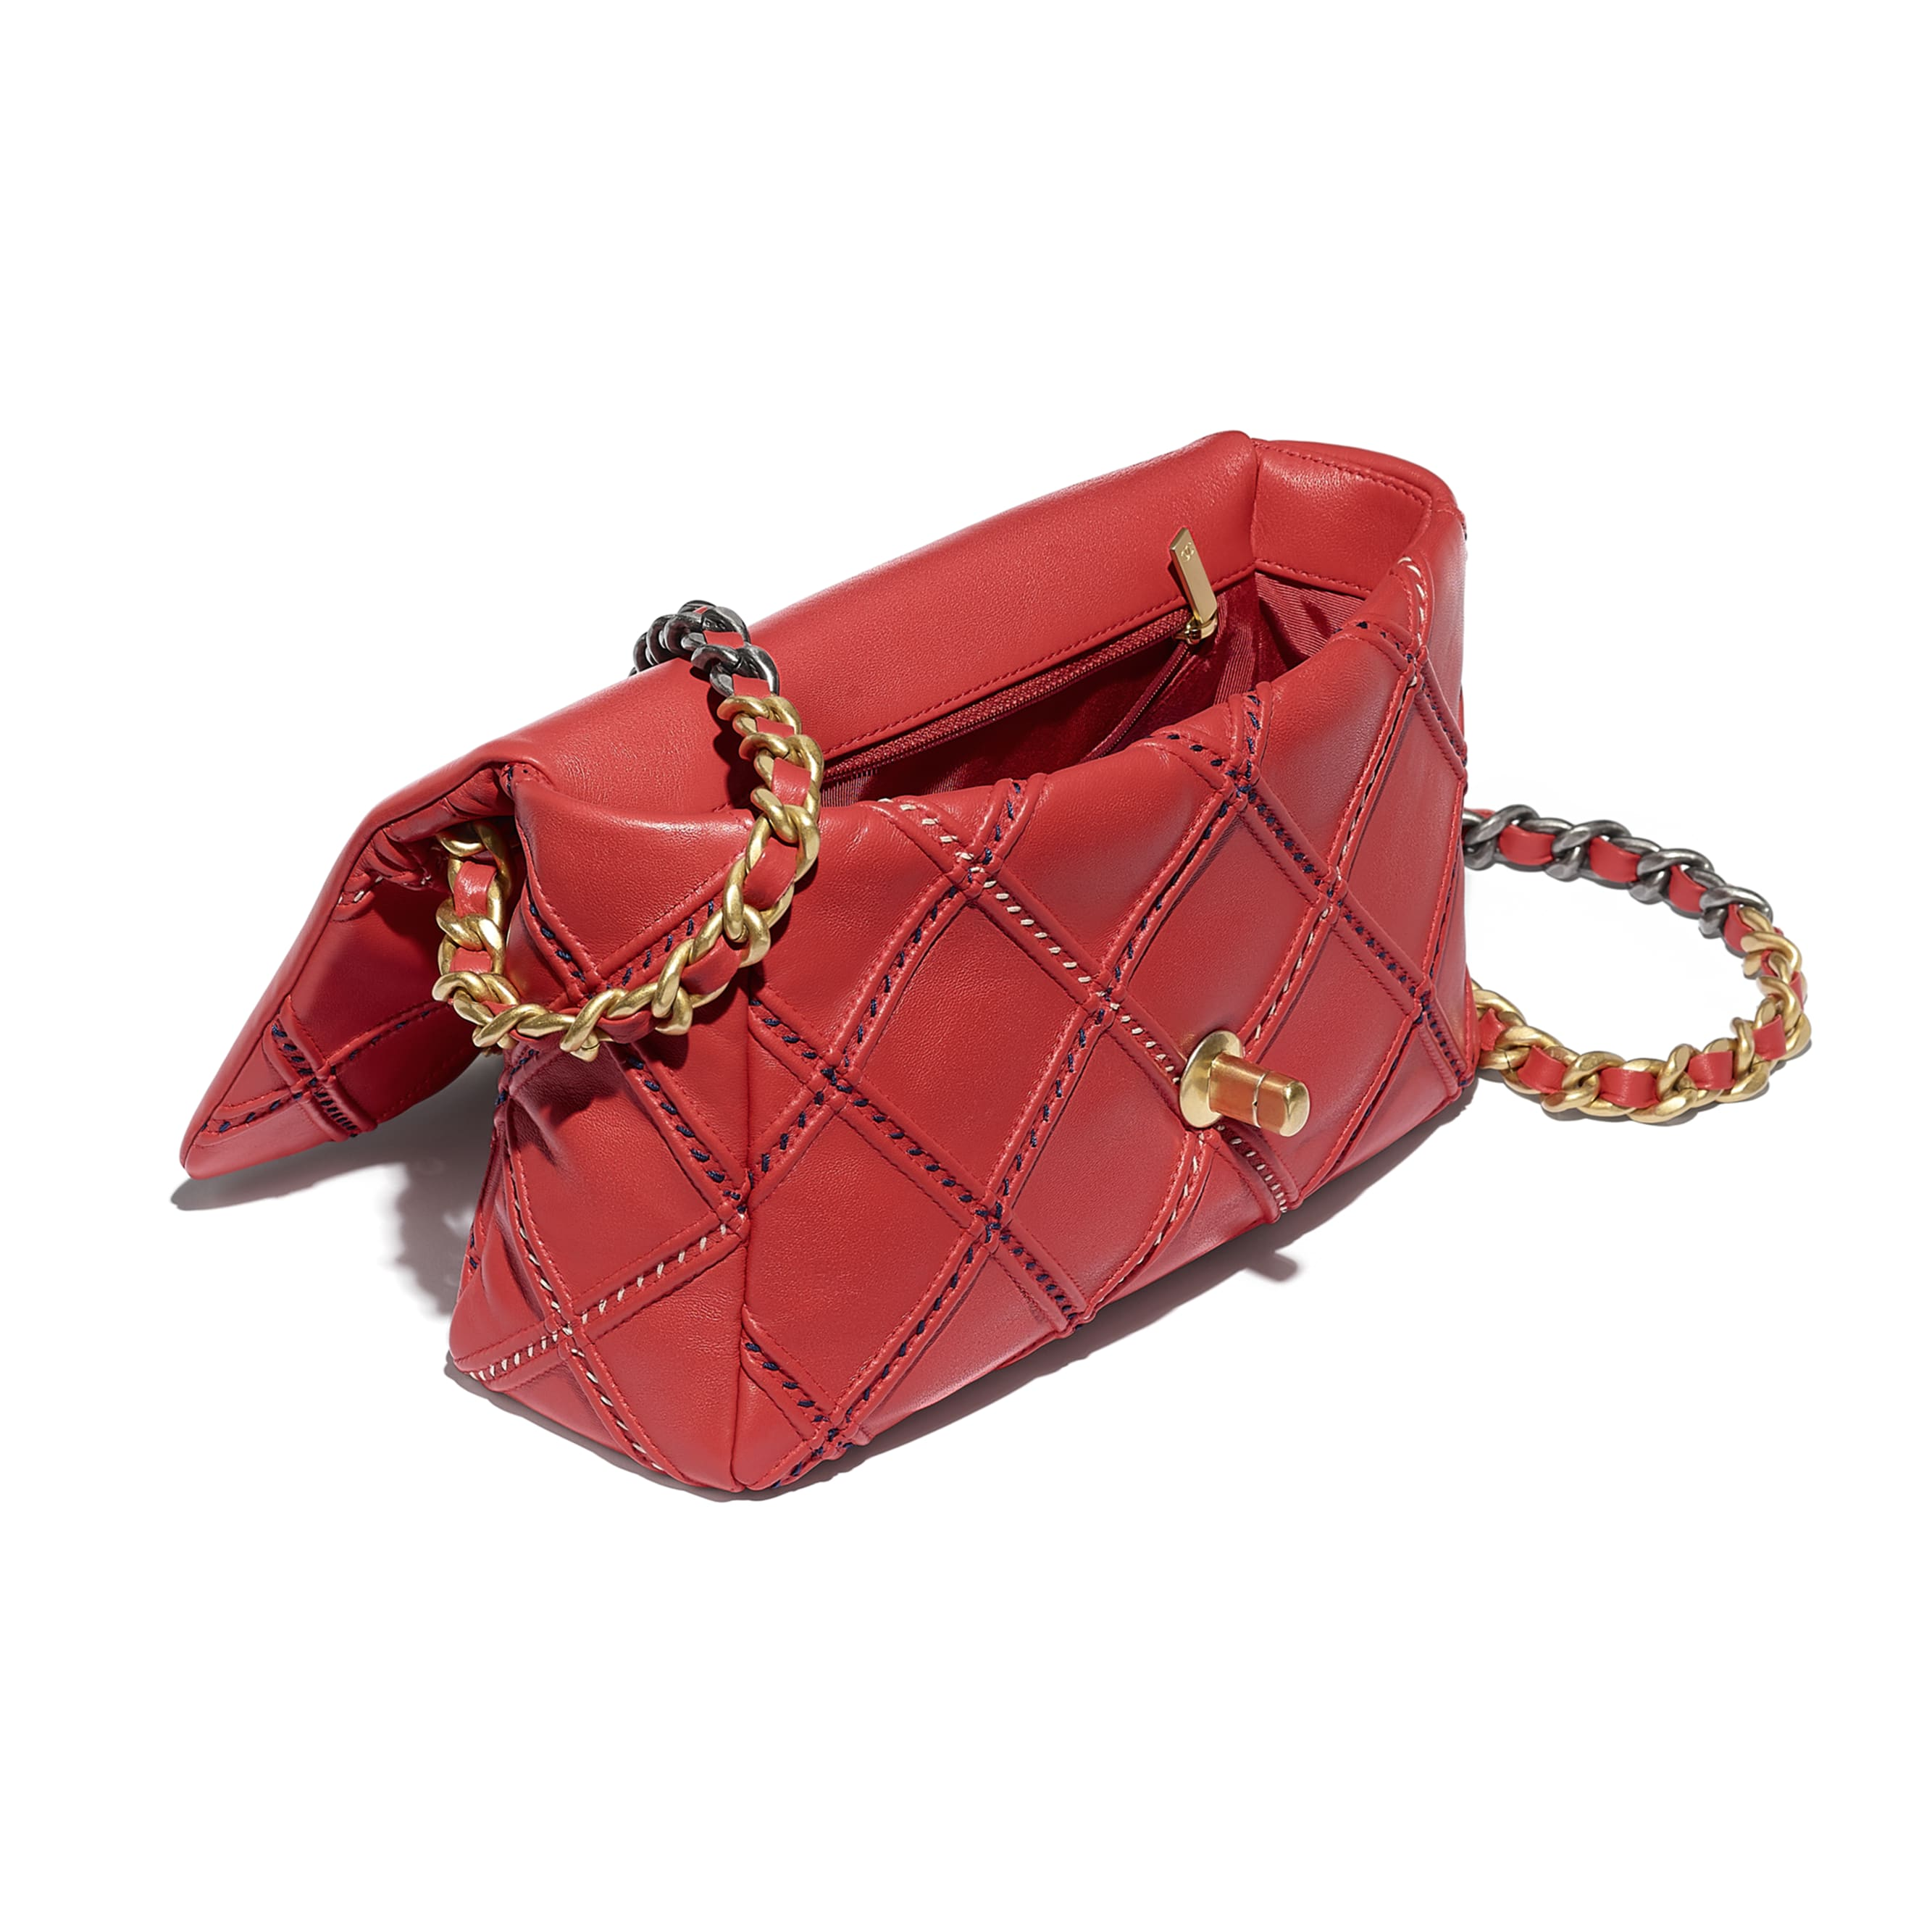 CHANEL 19 Flap Bag - Red - Lambskin, Mixed Fibres, Gold-Tone, Silver-Tone & Ruthenium-Finish Metal - CHANEL - Other view - see standard sized version